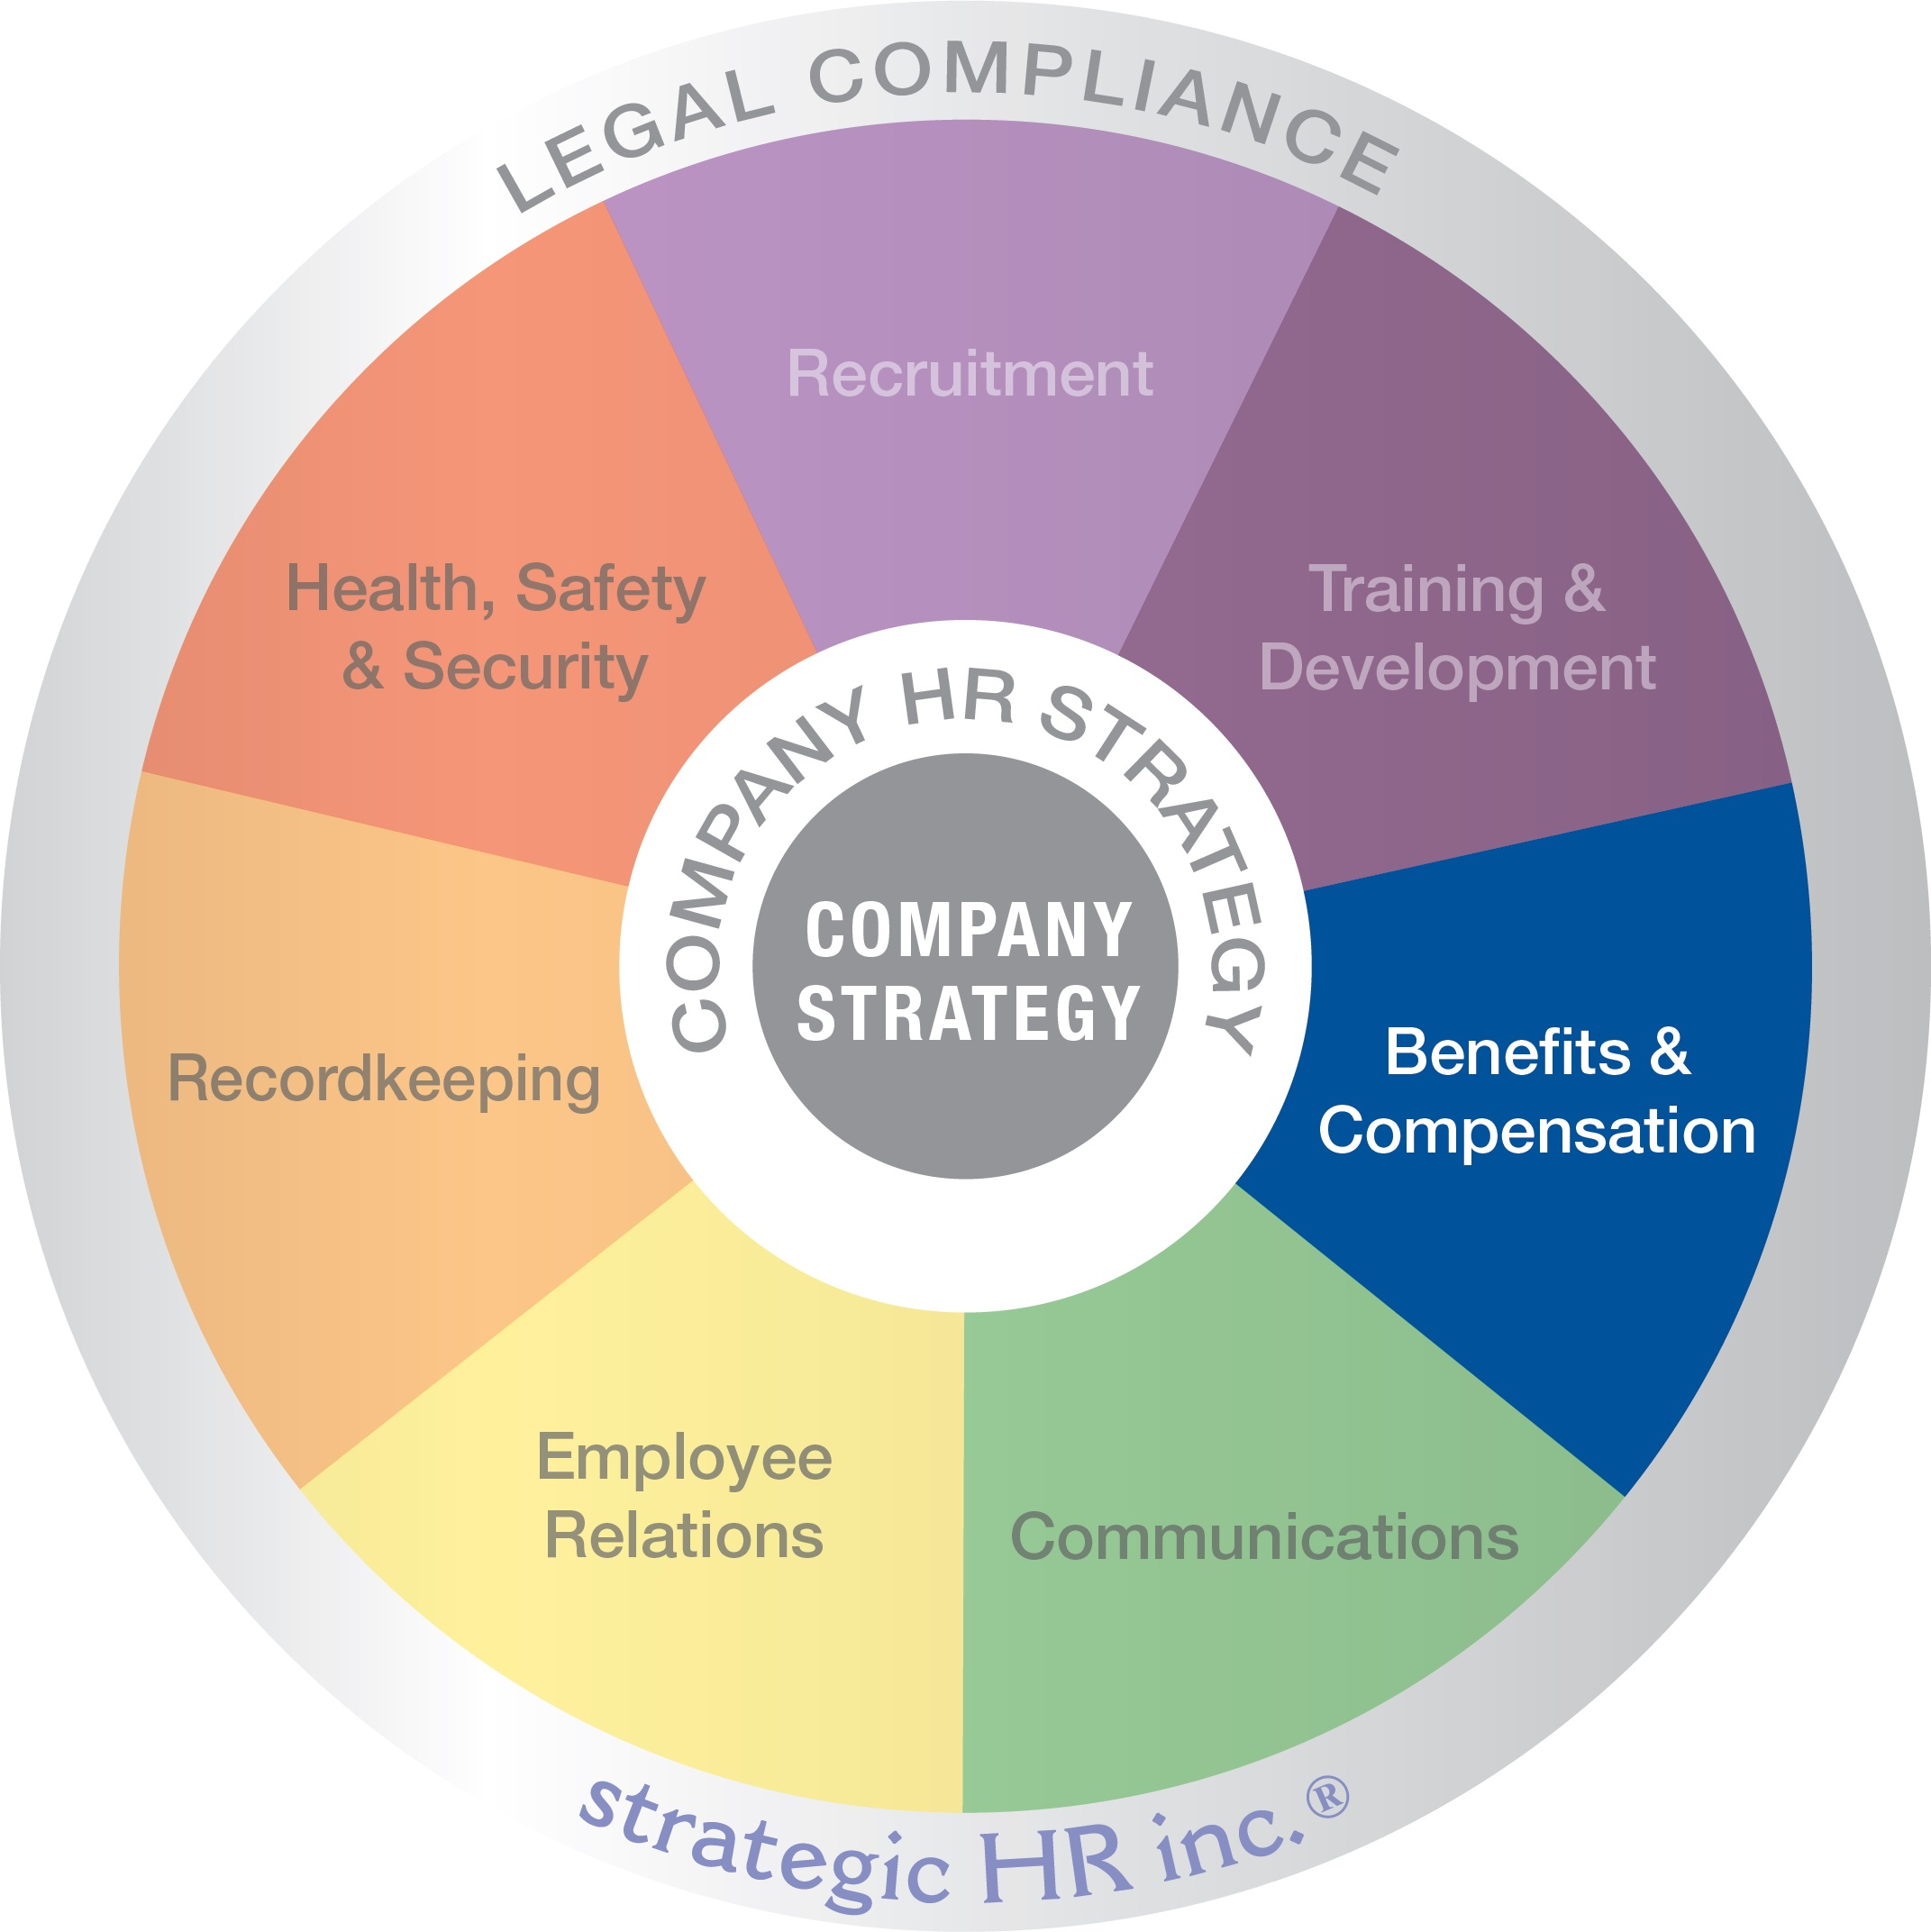 Image of strategic HR inc's wheel of HR Services. featuring the Benefits & Compensation wedge.